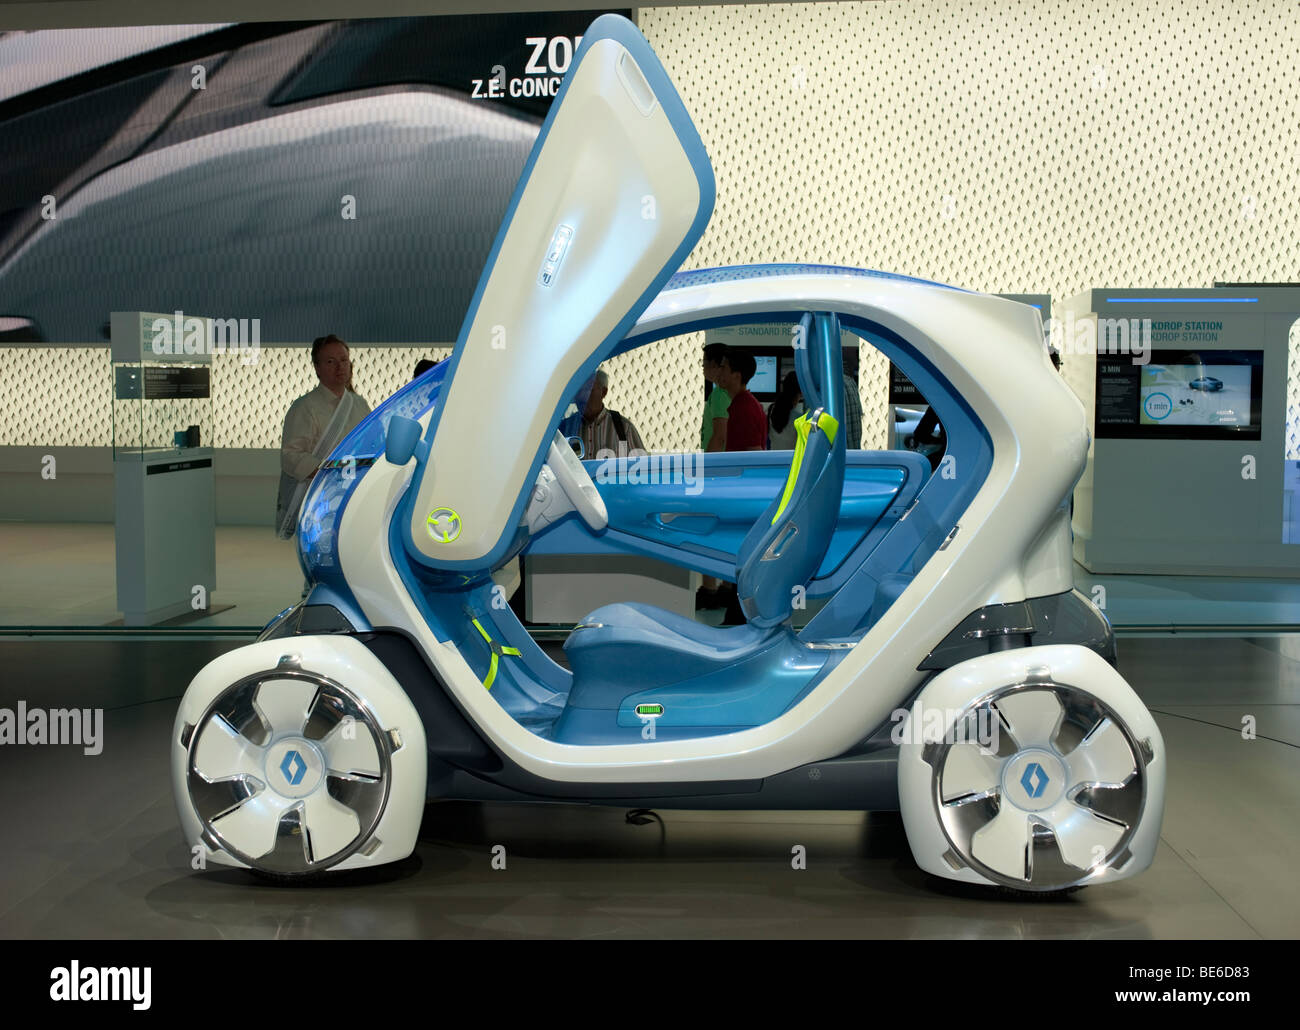 Renault Twizy ZE concept electric car at Frankfurt Motor Show 2009 Stock Photo